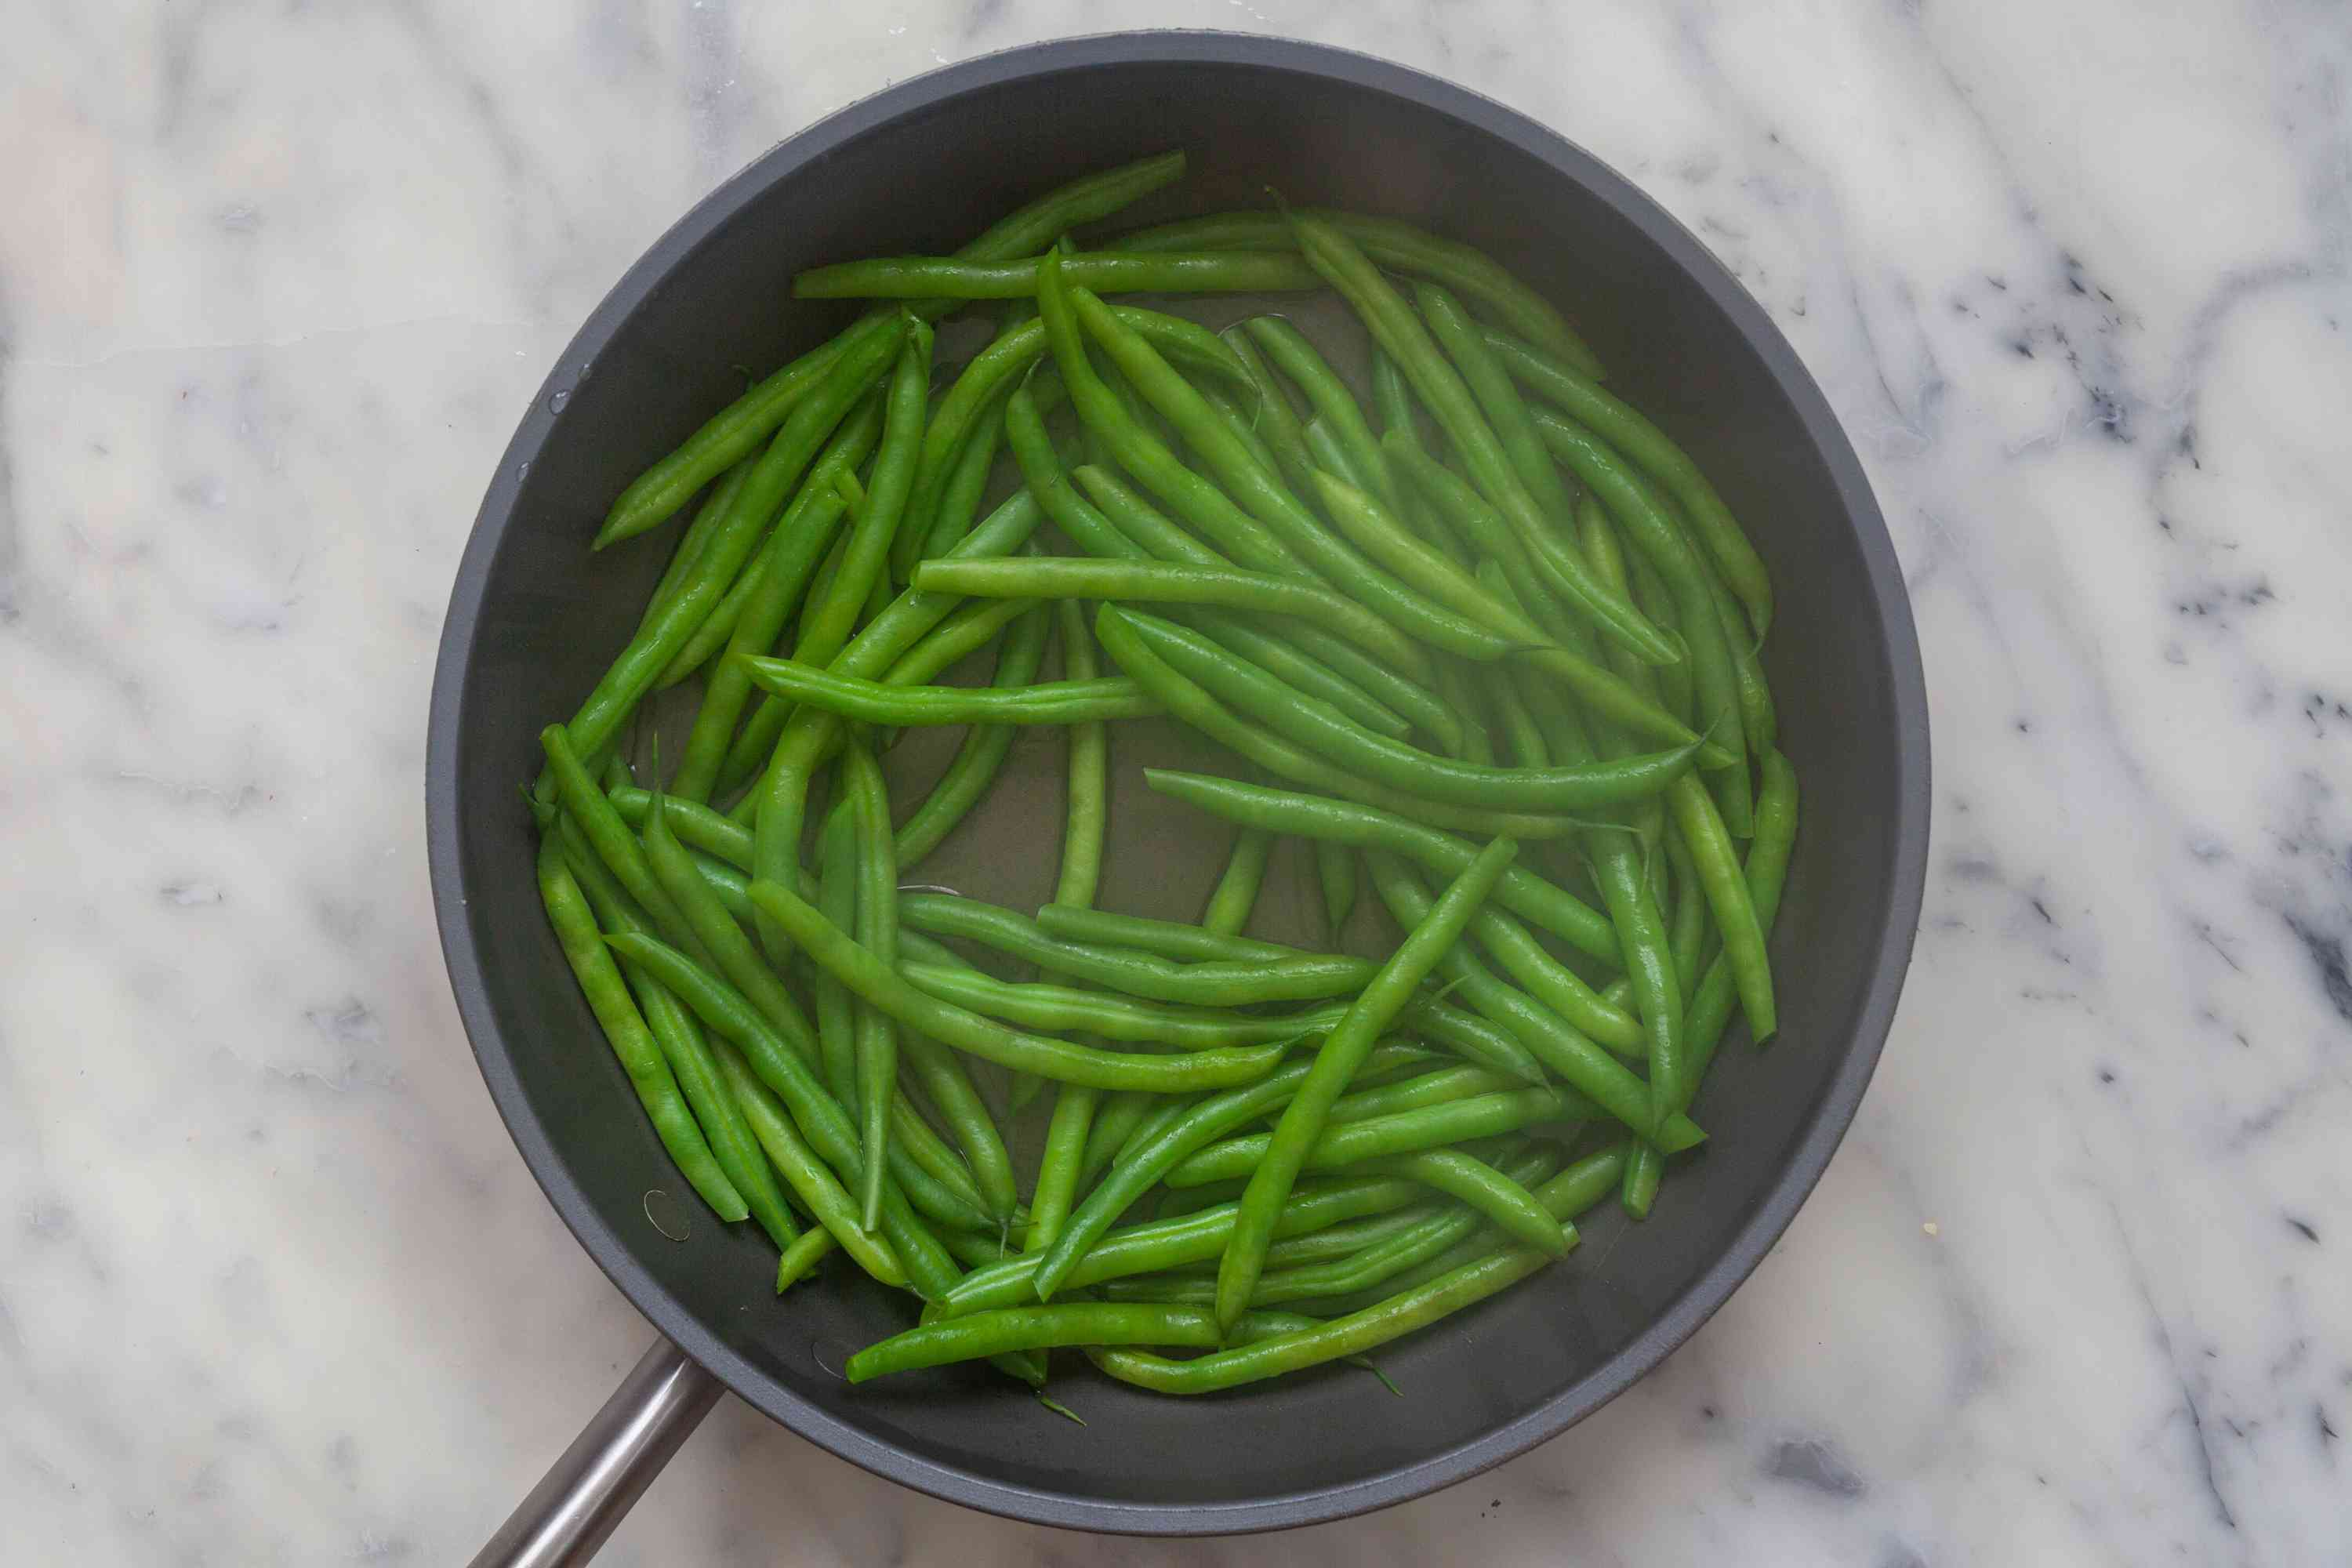 Green beans cooked in a skillet to make Blistered Green Beans with Gochujang.